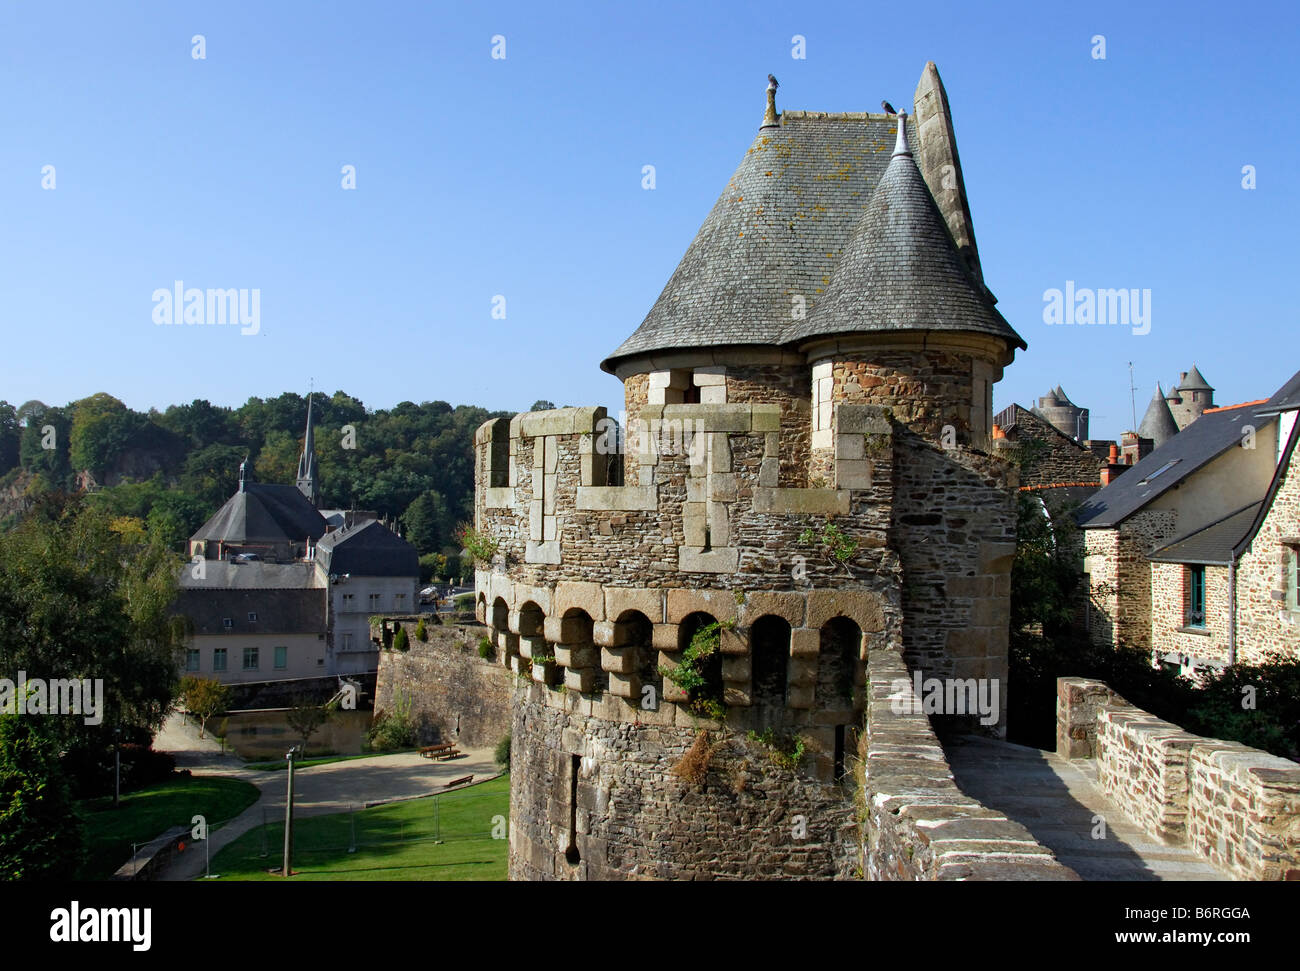 fortified walls surrounding Fougères Chateau, Brittany, France - Stock Image